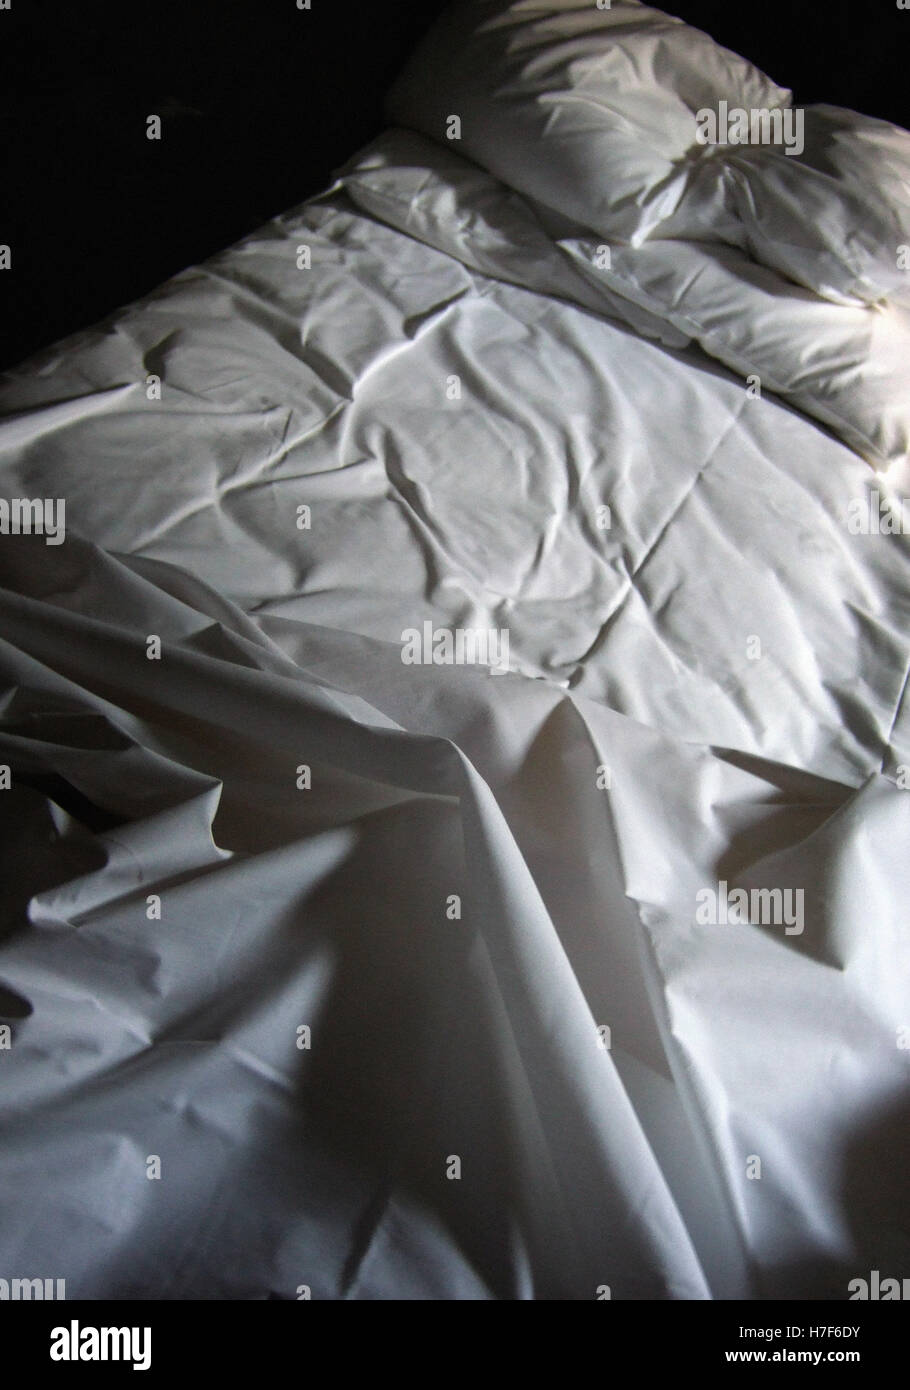 slept in unmade bed - Stock Image